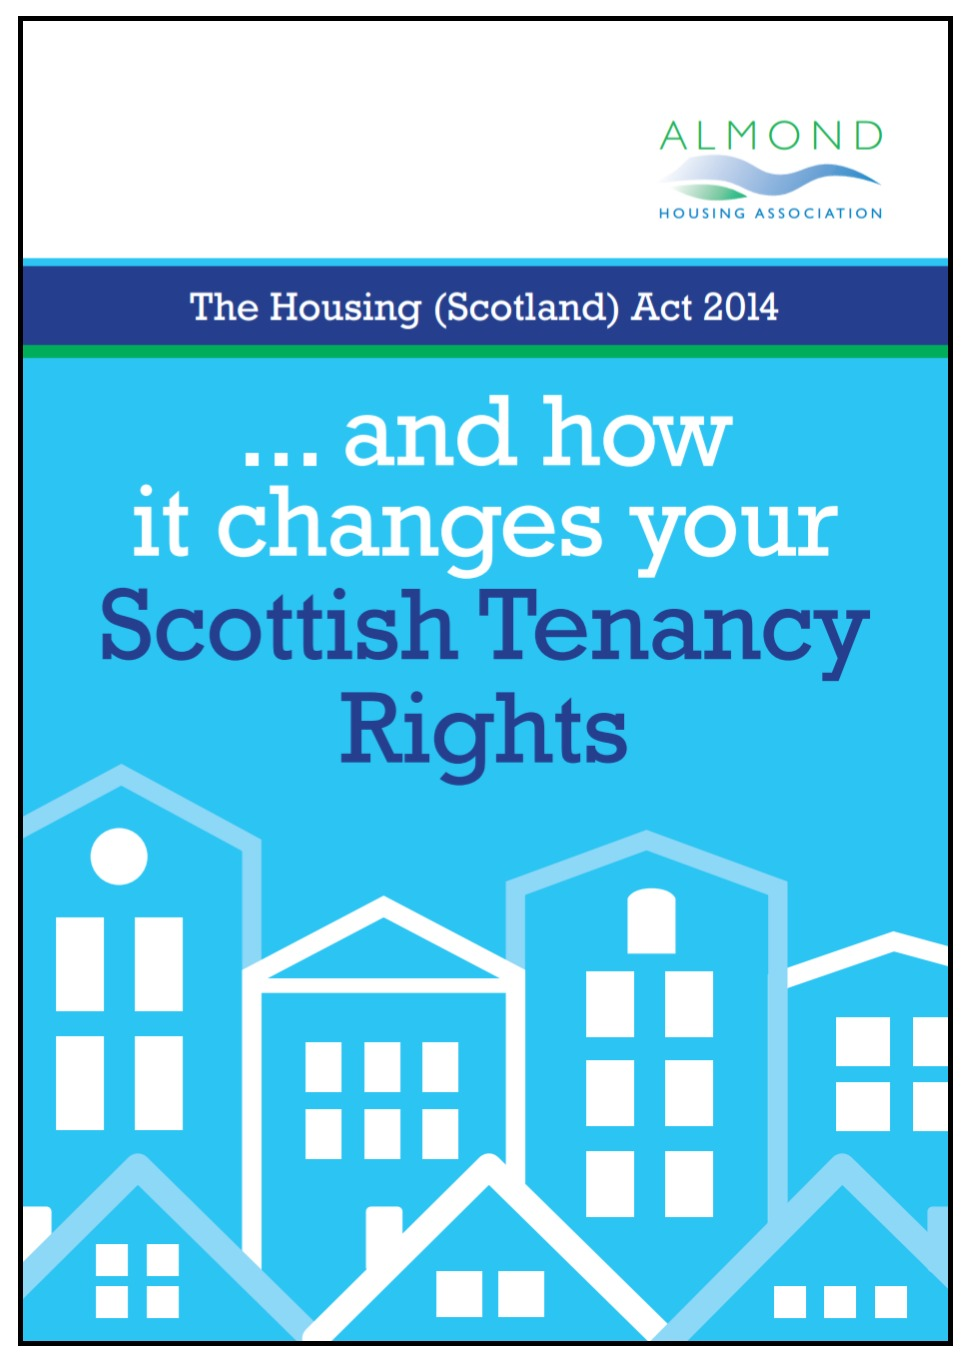 Housing (Scotland) Act 2014 leaflet cover